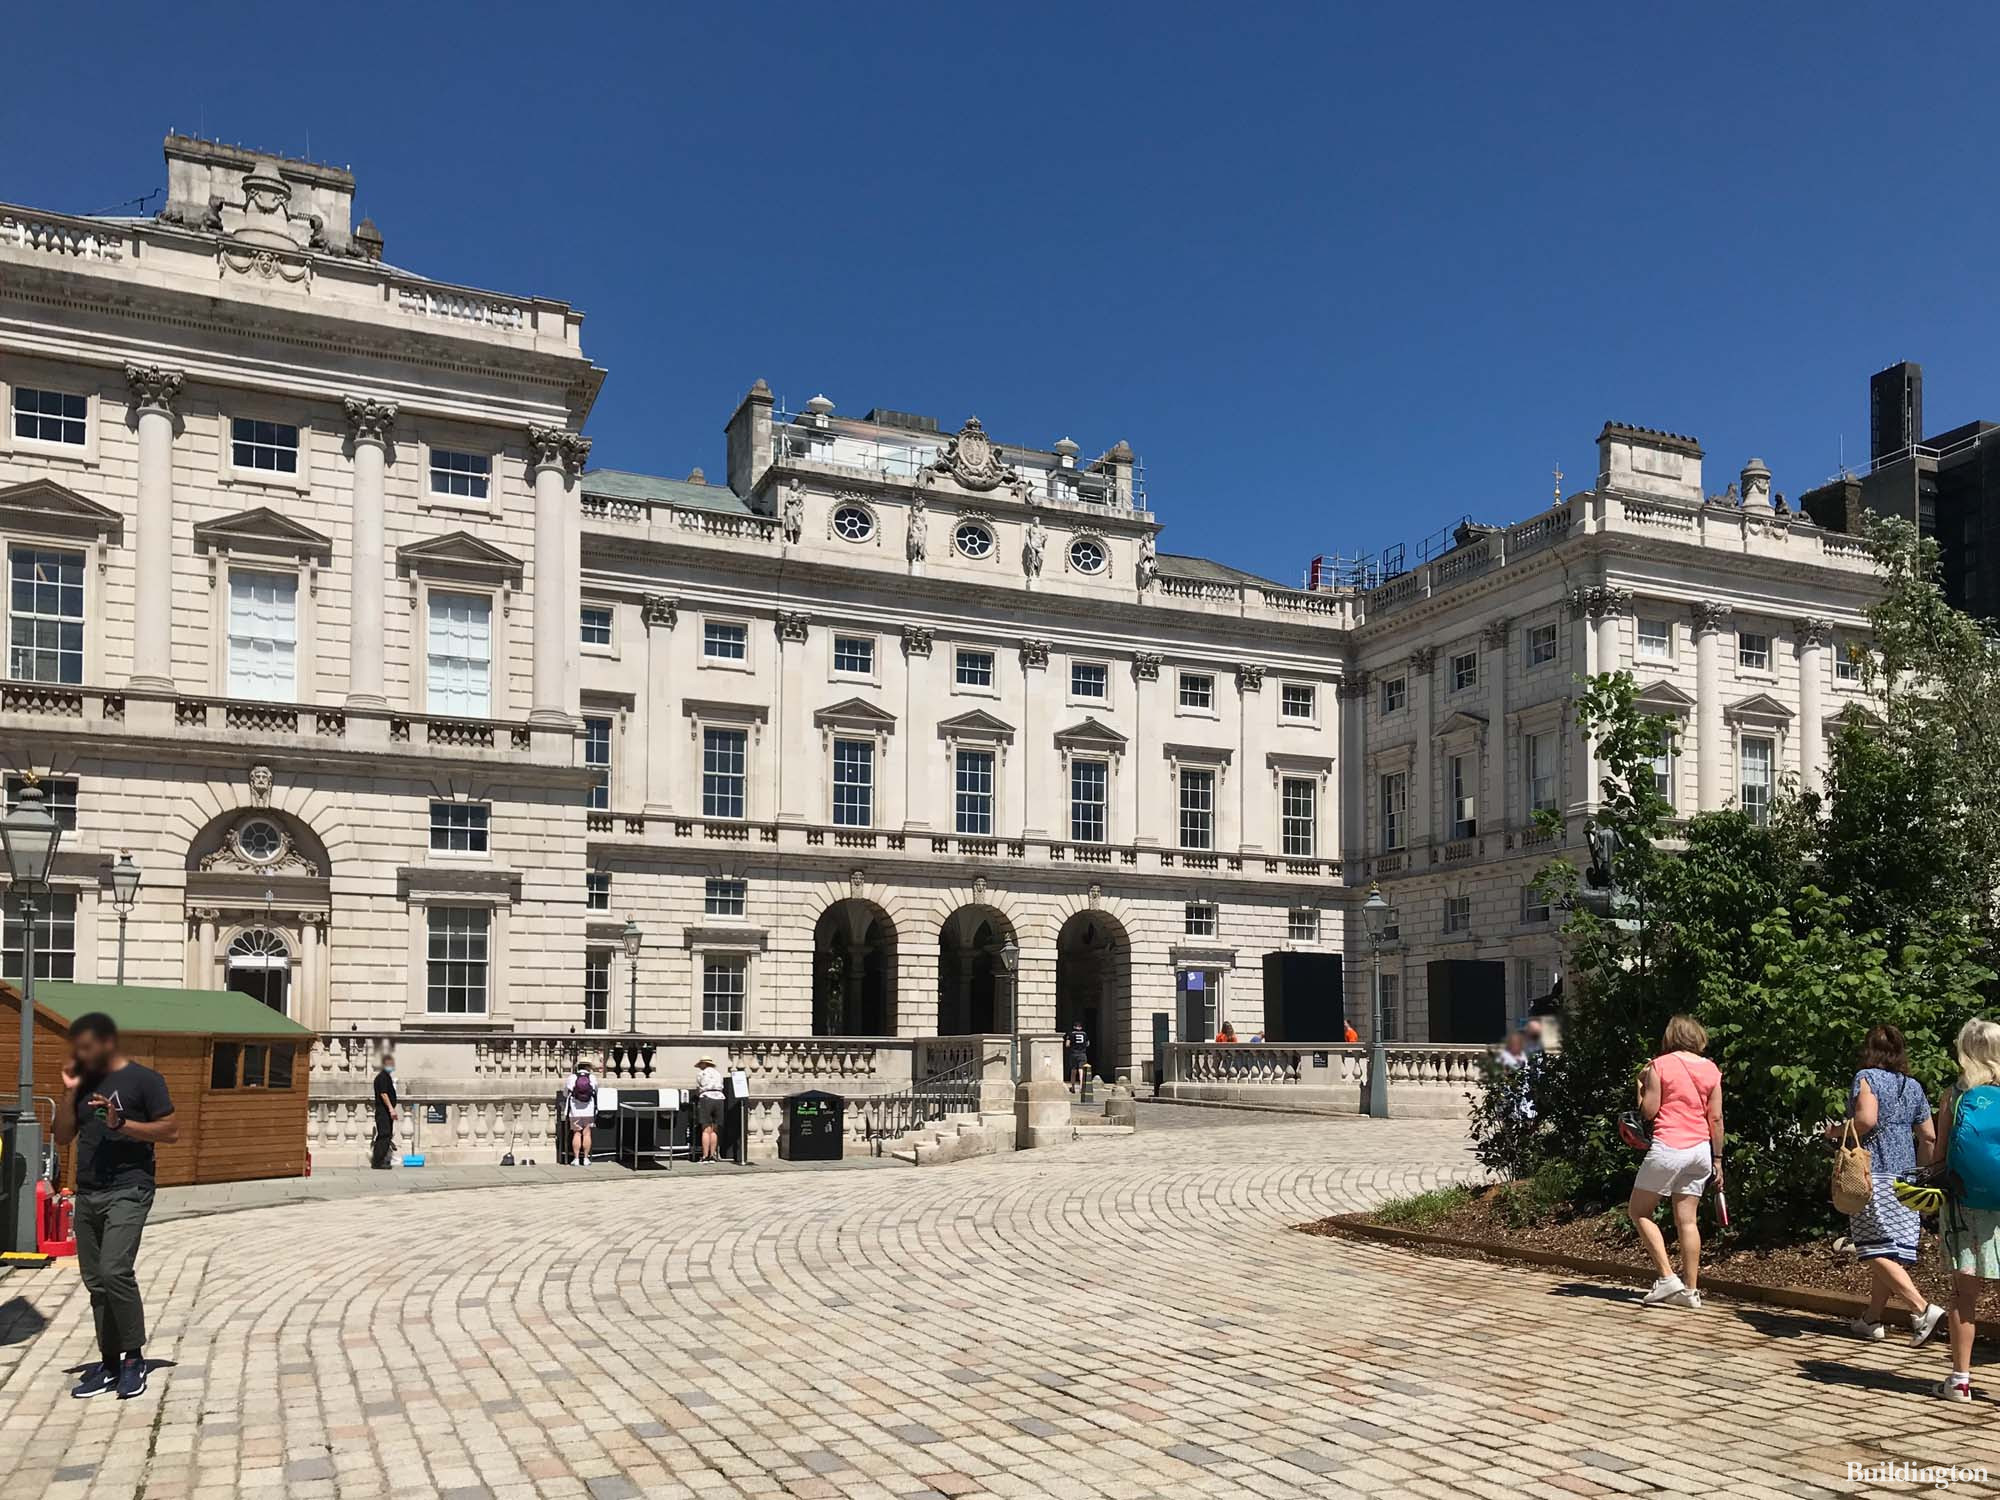 Somerset House North Wing in June 2021.